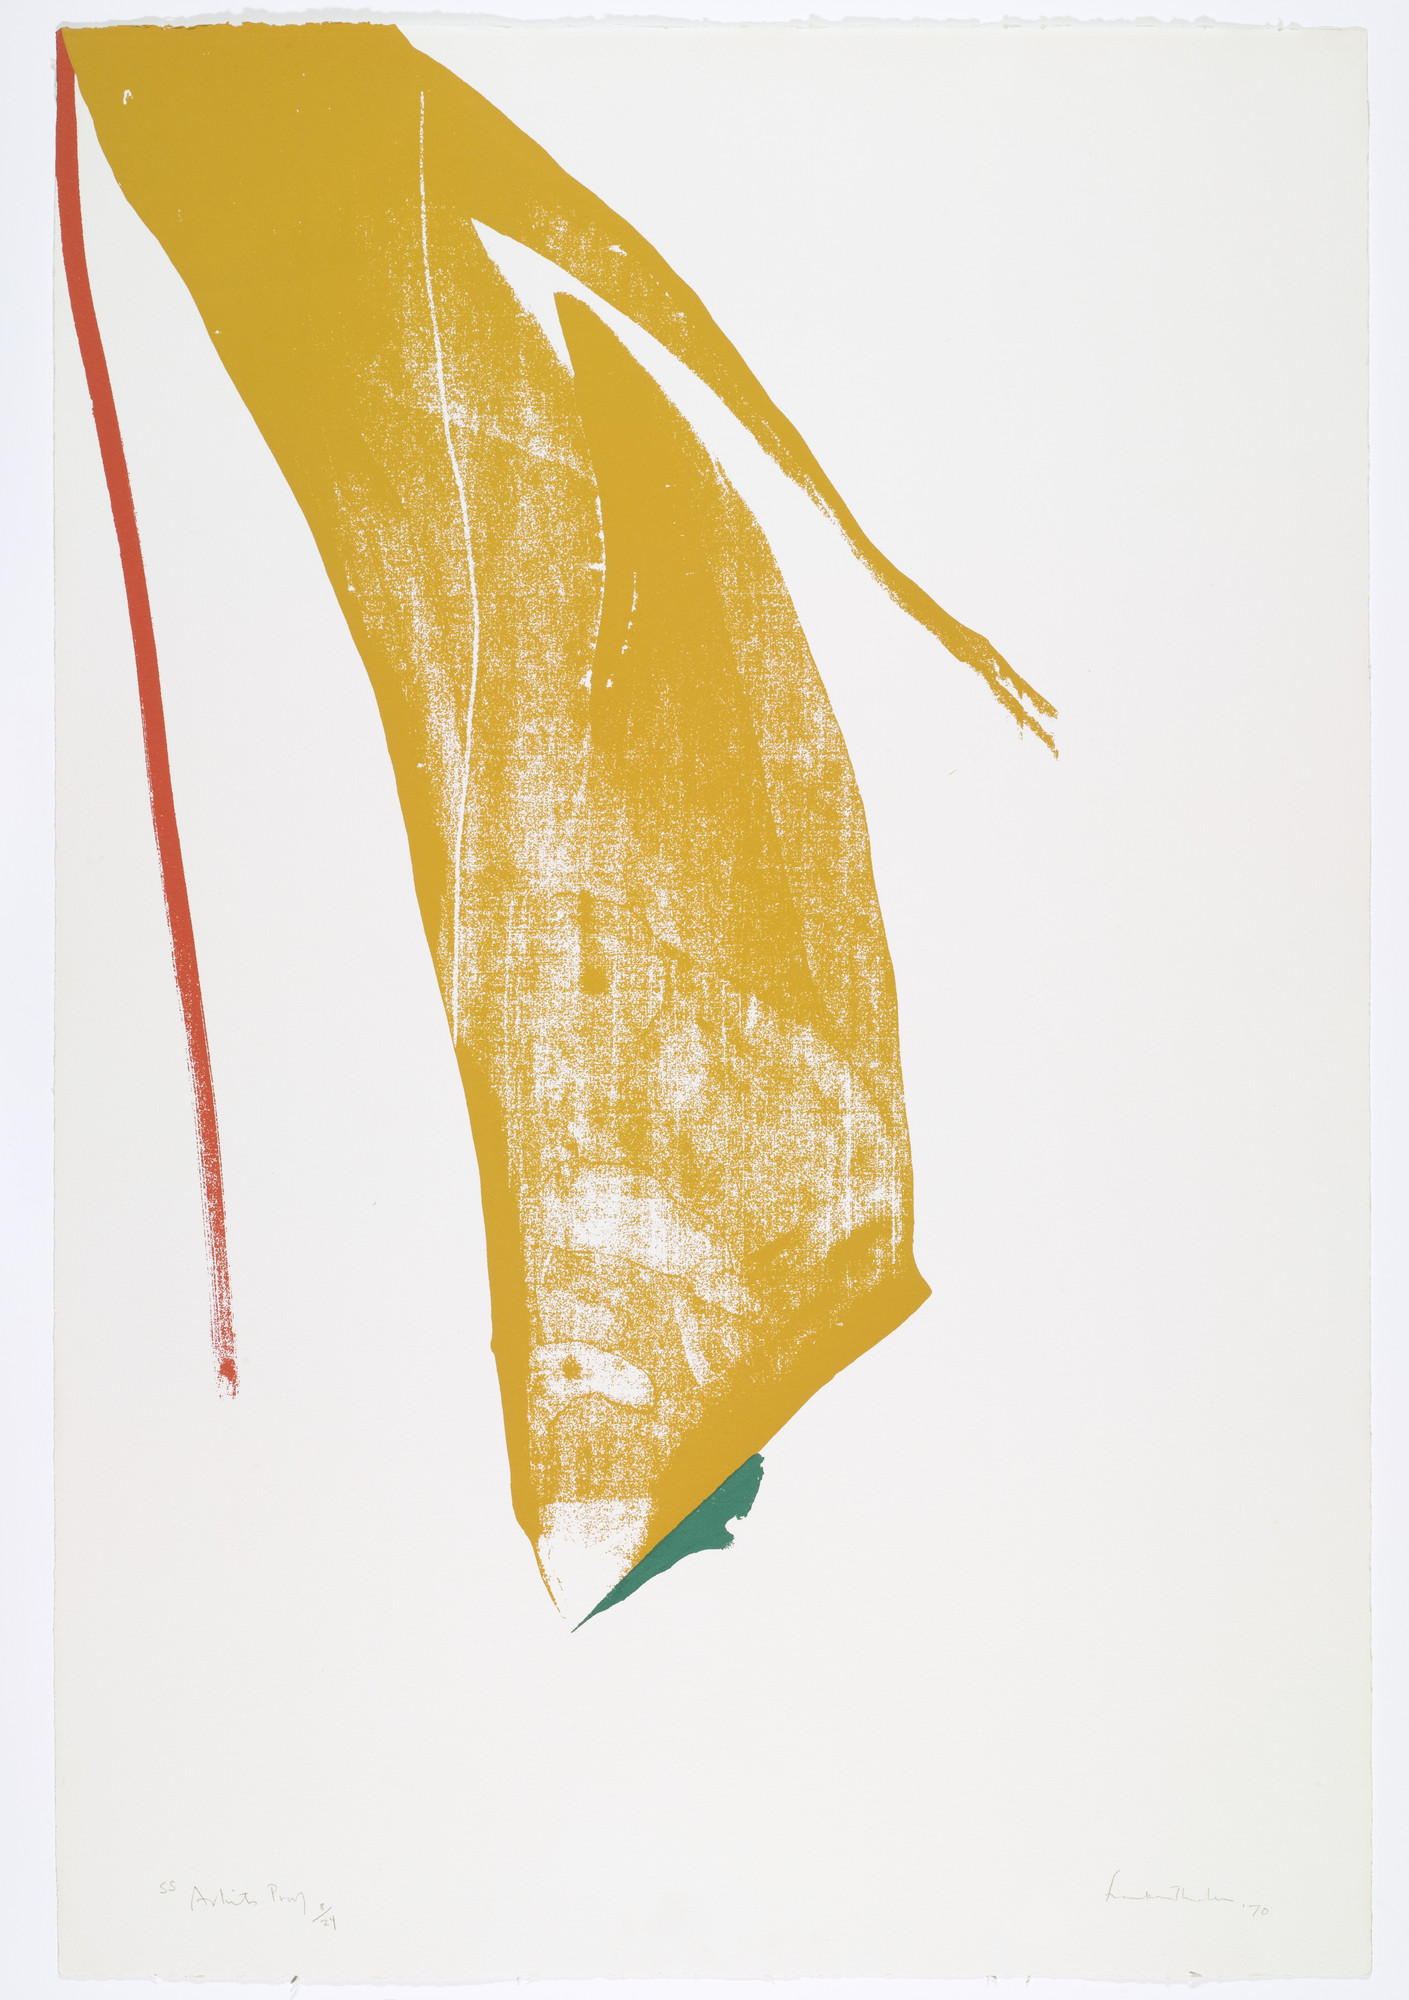 Helen Frankenthaler. Untitled from What Red Lines Can Do. 1970